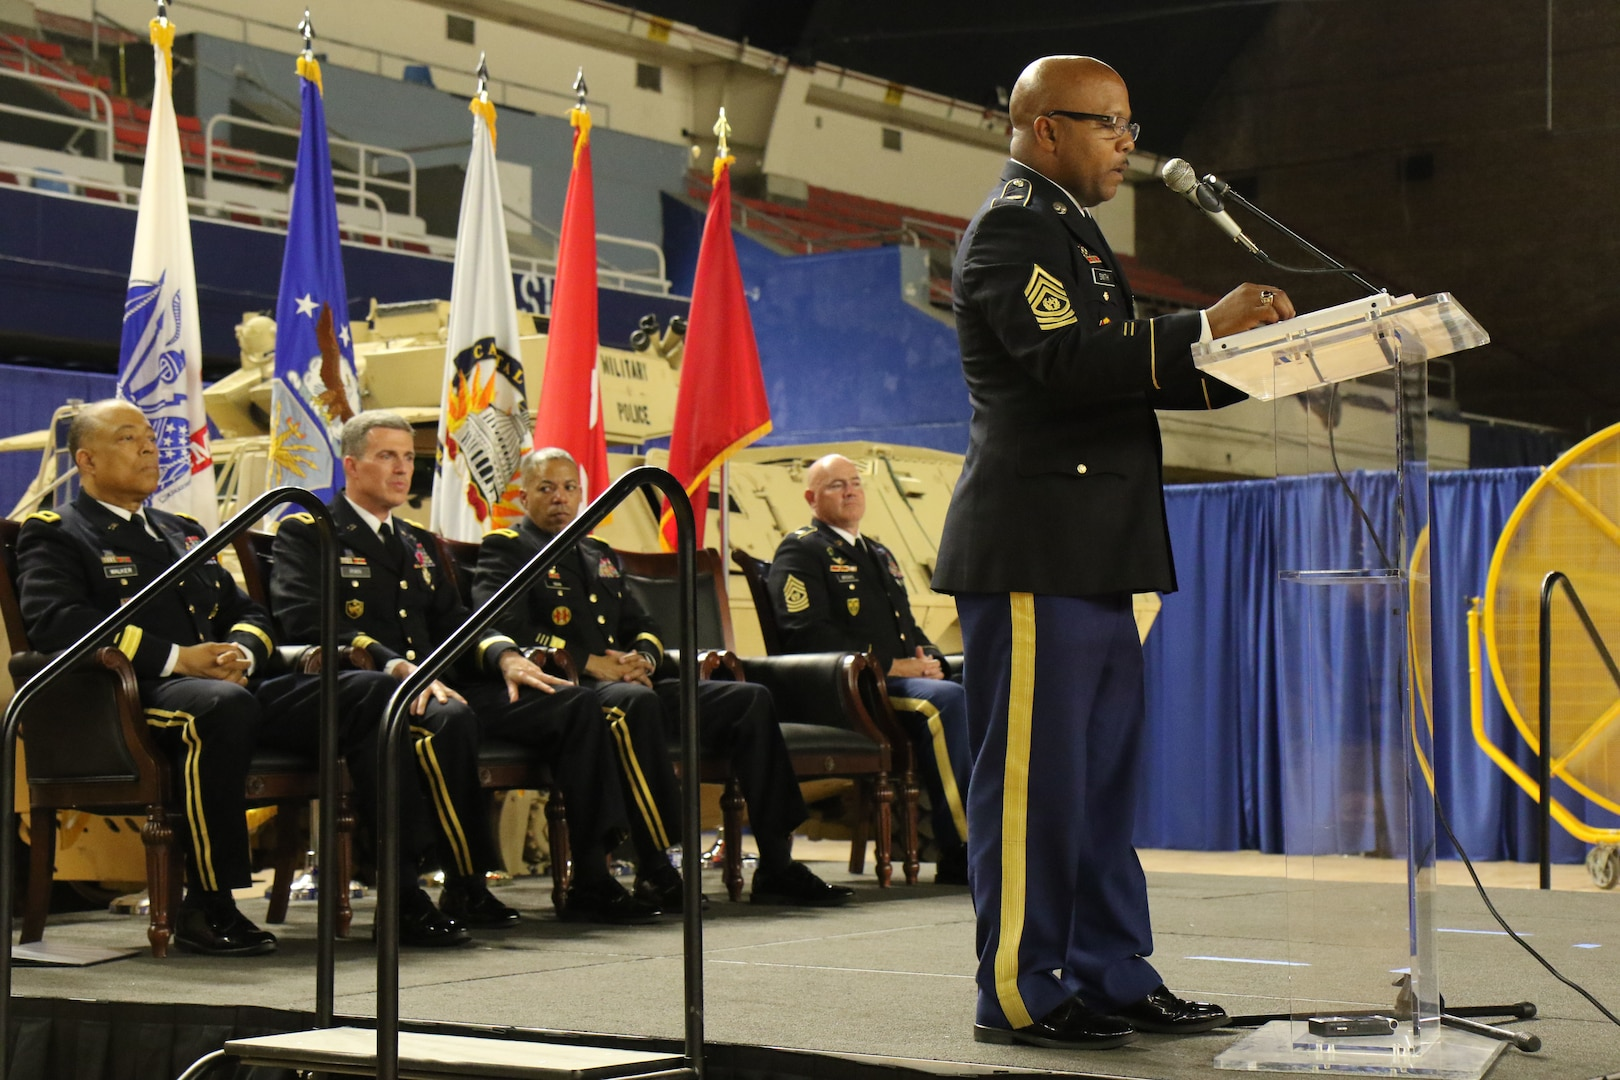 WASHINGTON- Command Sgt. Maj. Terrance A. Smith addresses Soldiers during the Land Component Command (LCC) change of responsibility ceremony, June 10, 2018 at the District of Columbia Armory. Smith will serve as an enlisted adviser to Brig. Gen. Robert K. Ryan, Commander, LCC, D.C. National Guard. (U.S. Army National Guard photo by Sgt. Adrian Shelton/Released)